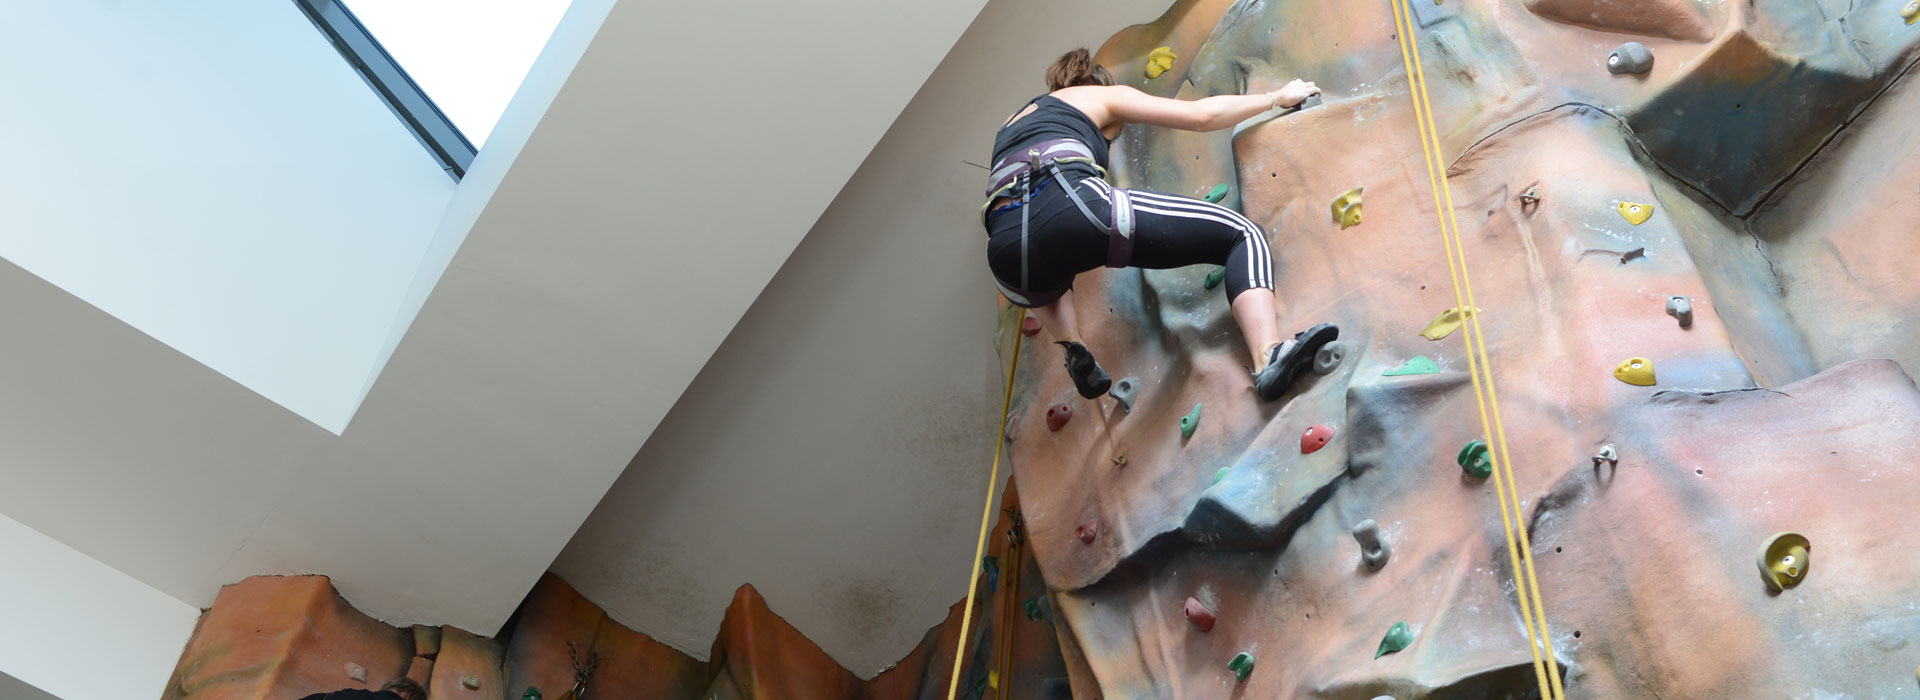 Wall Climbing at Malvern Active